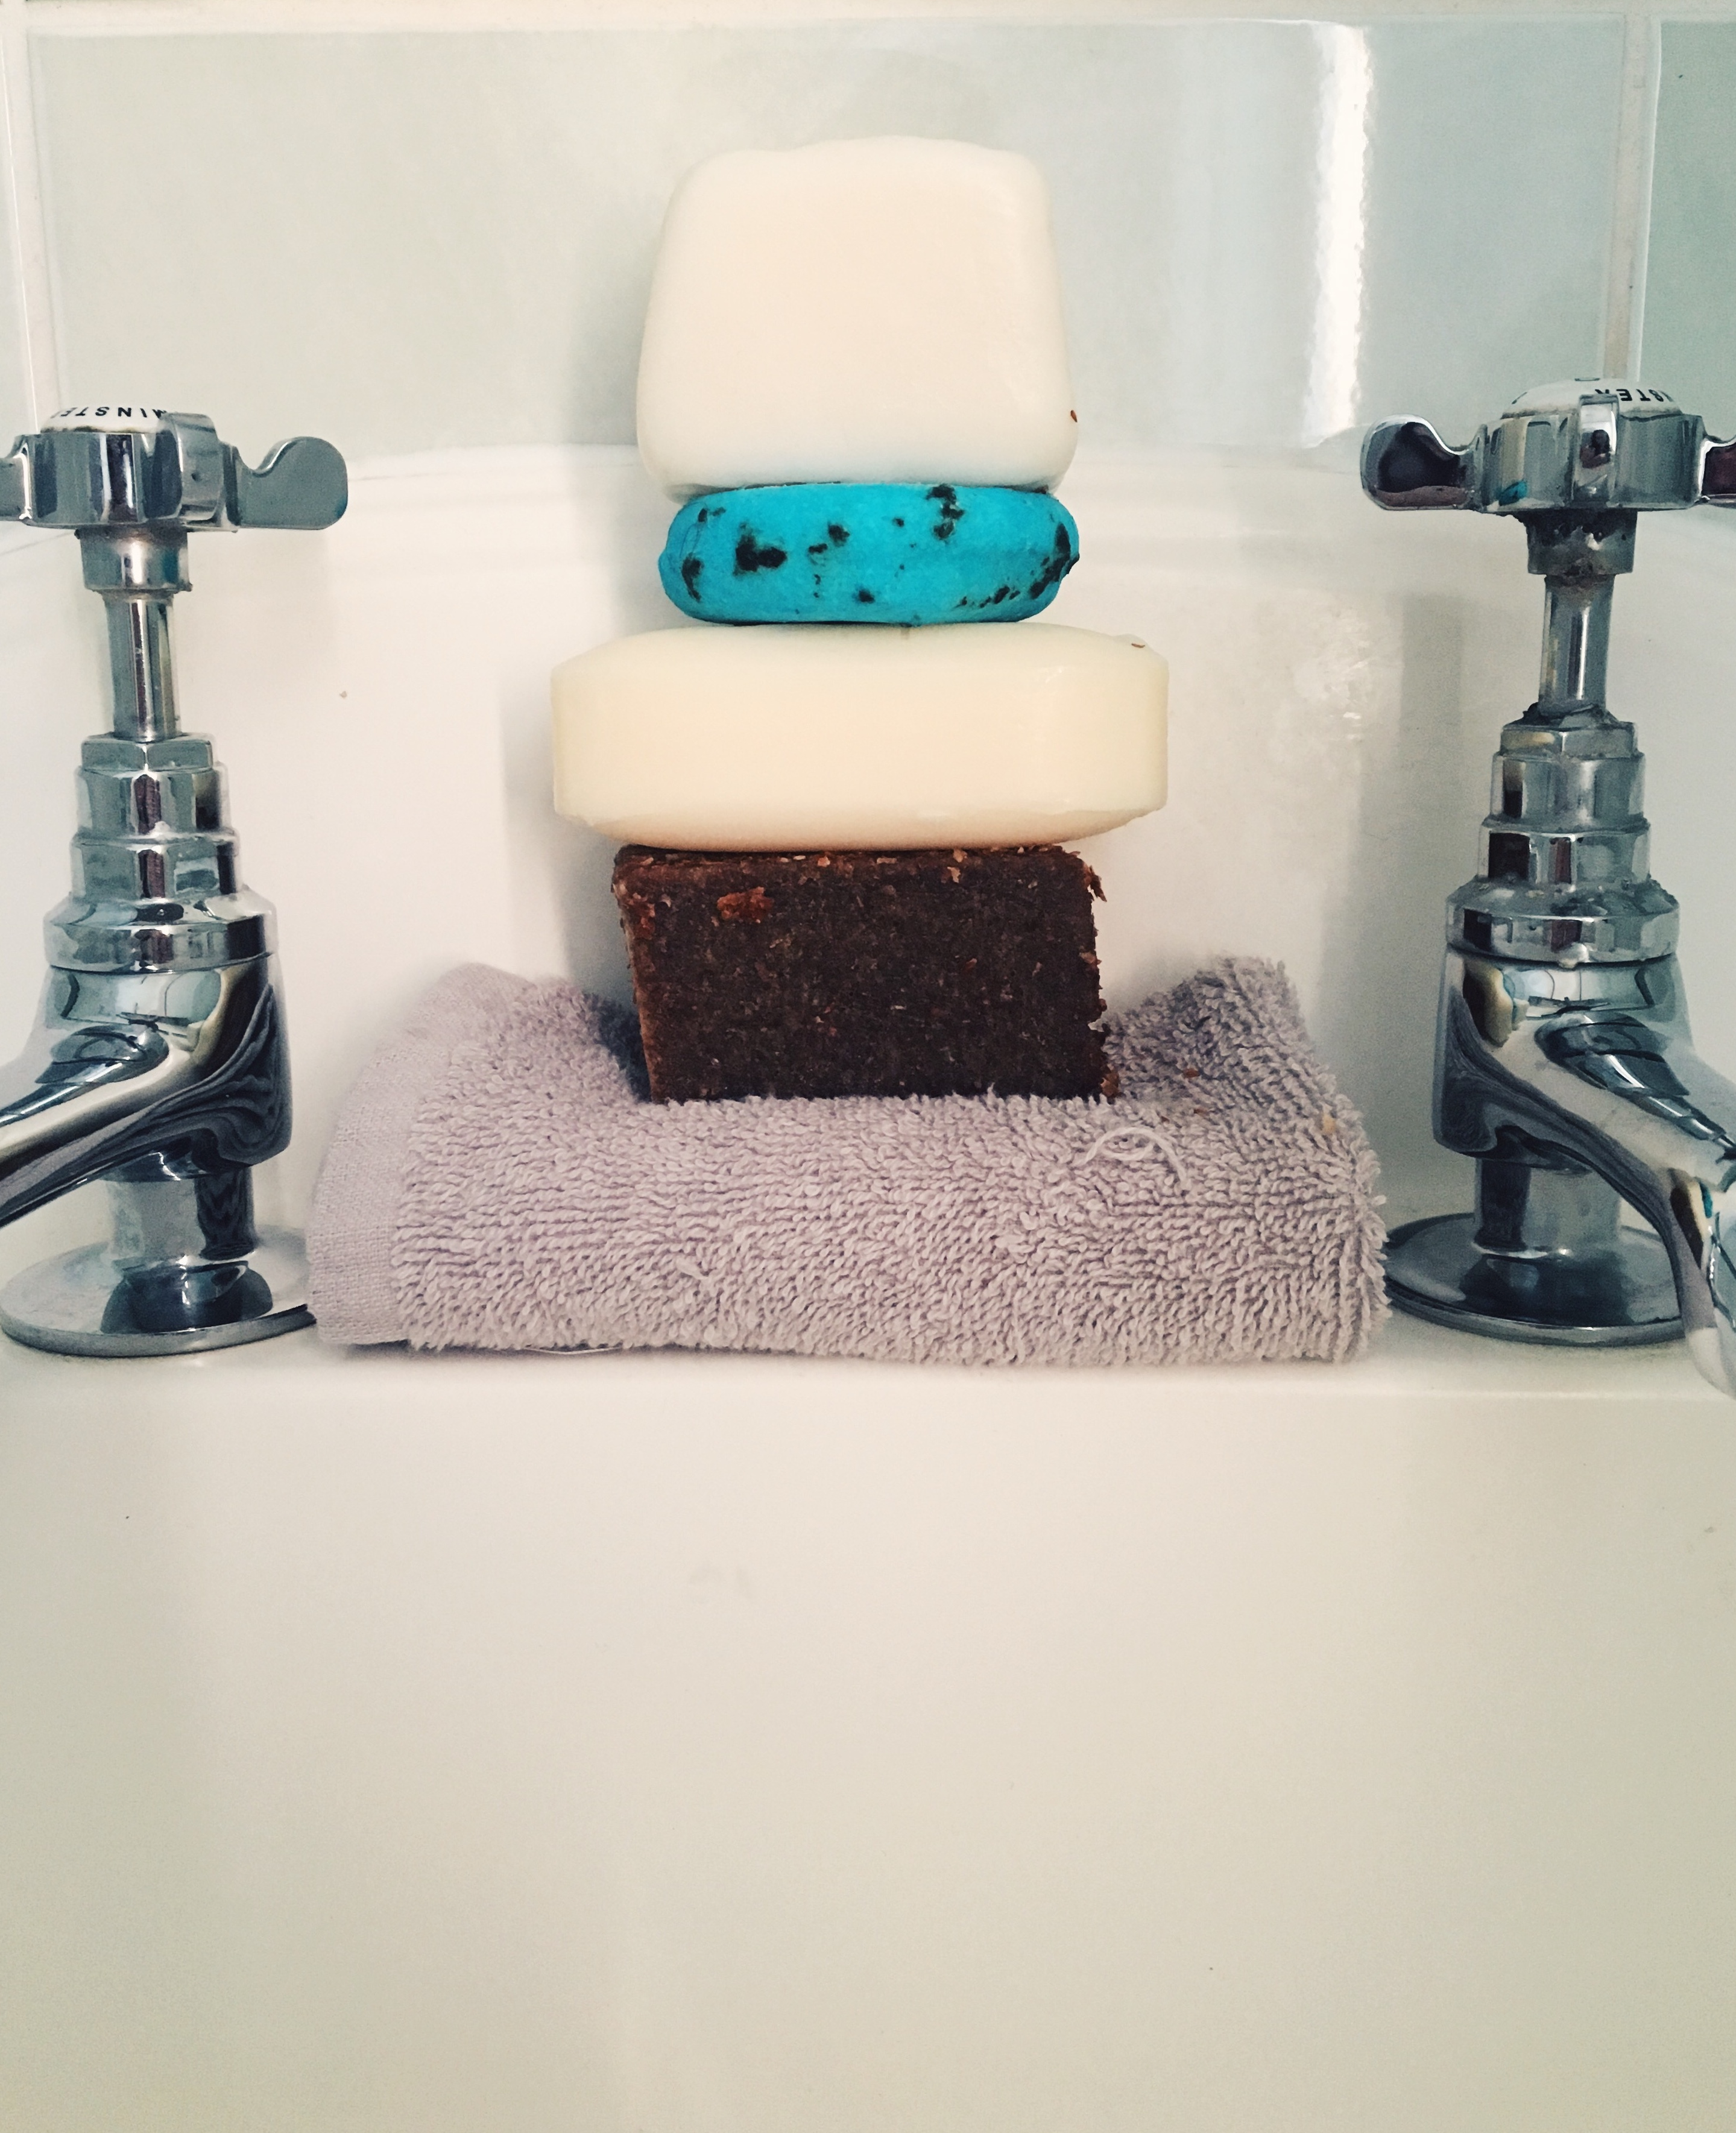 bathroom image of soap bars and a flannel